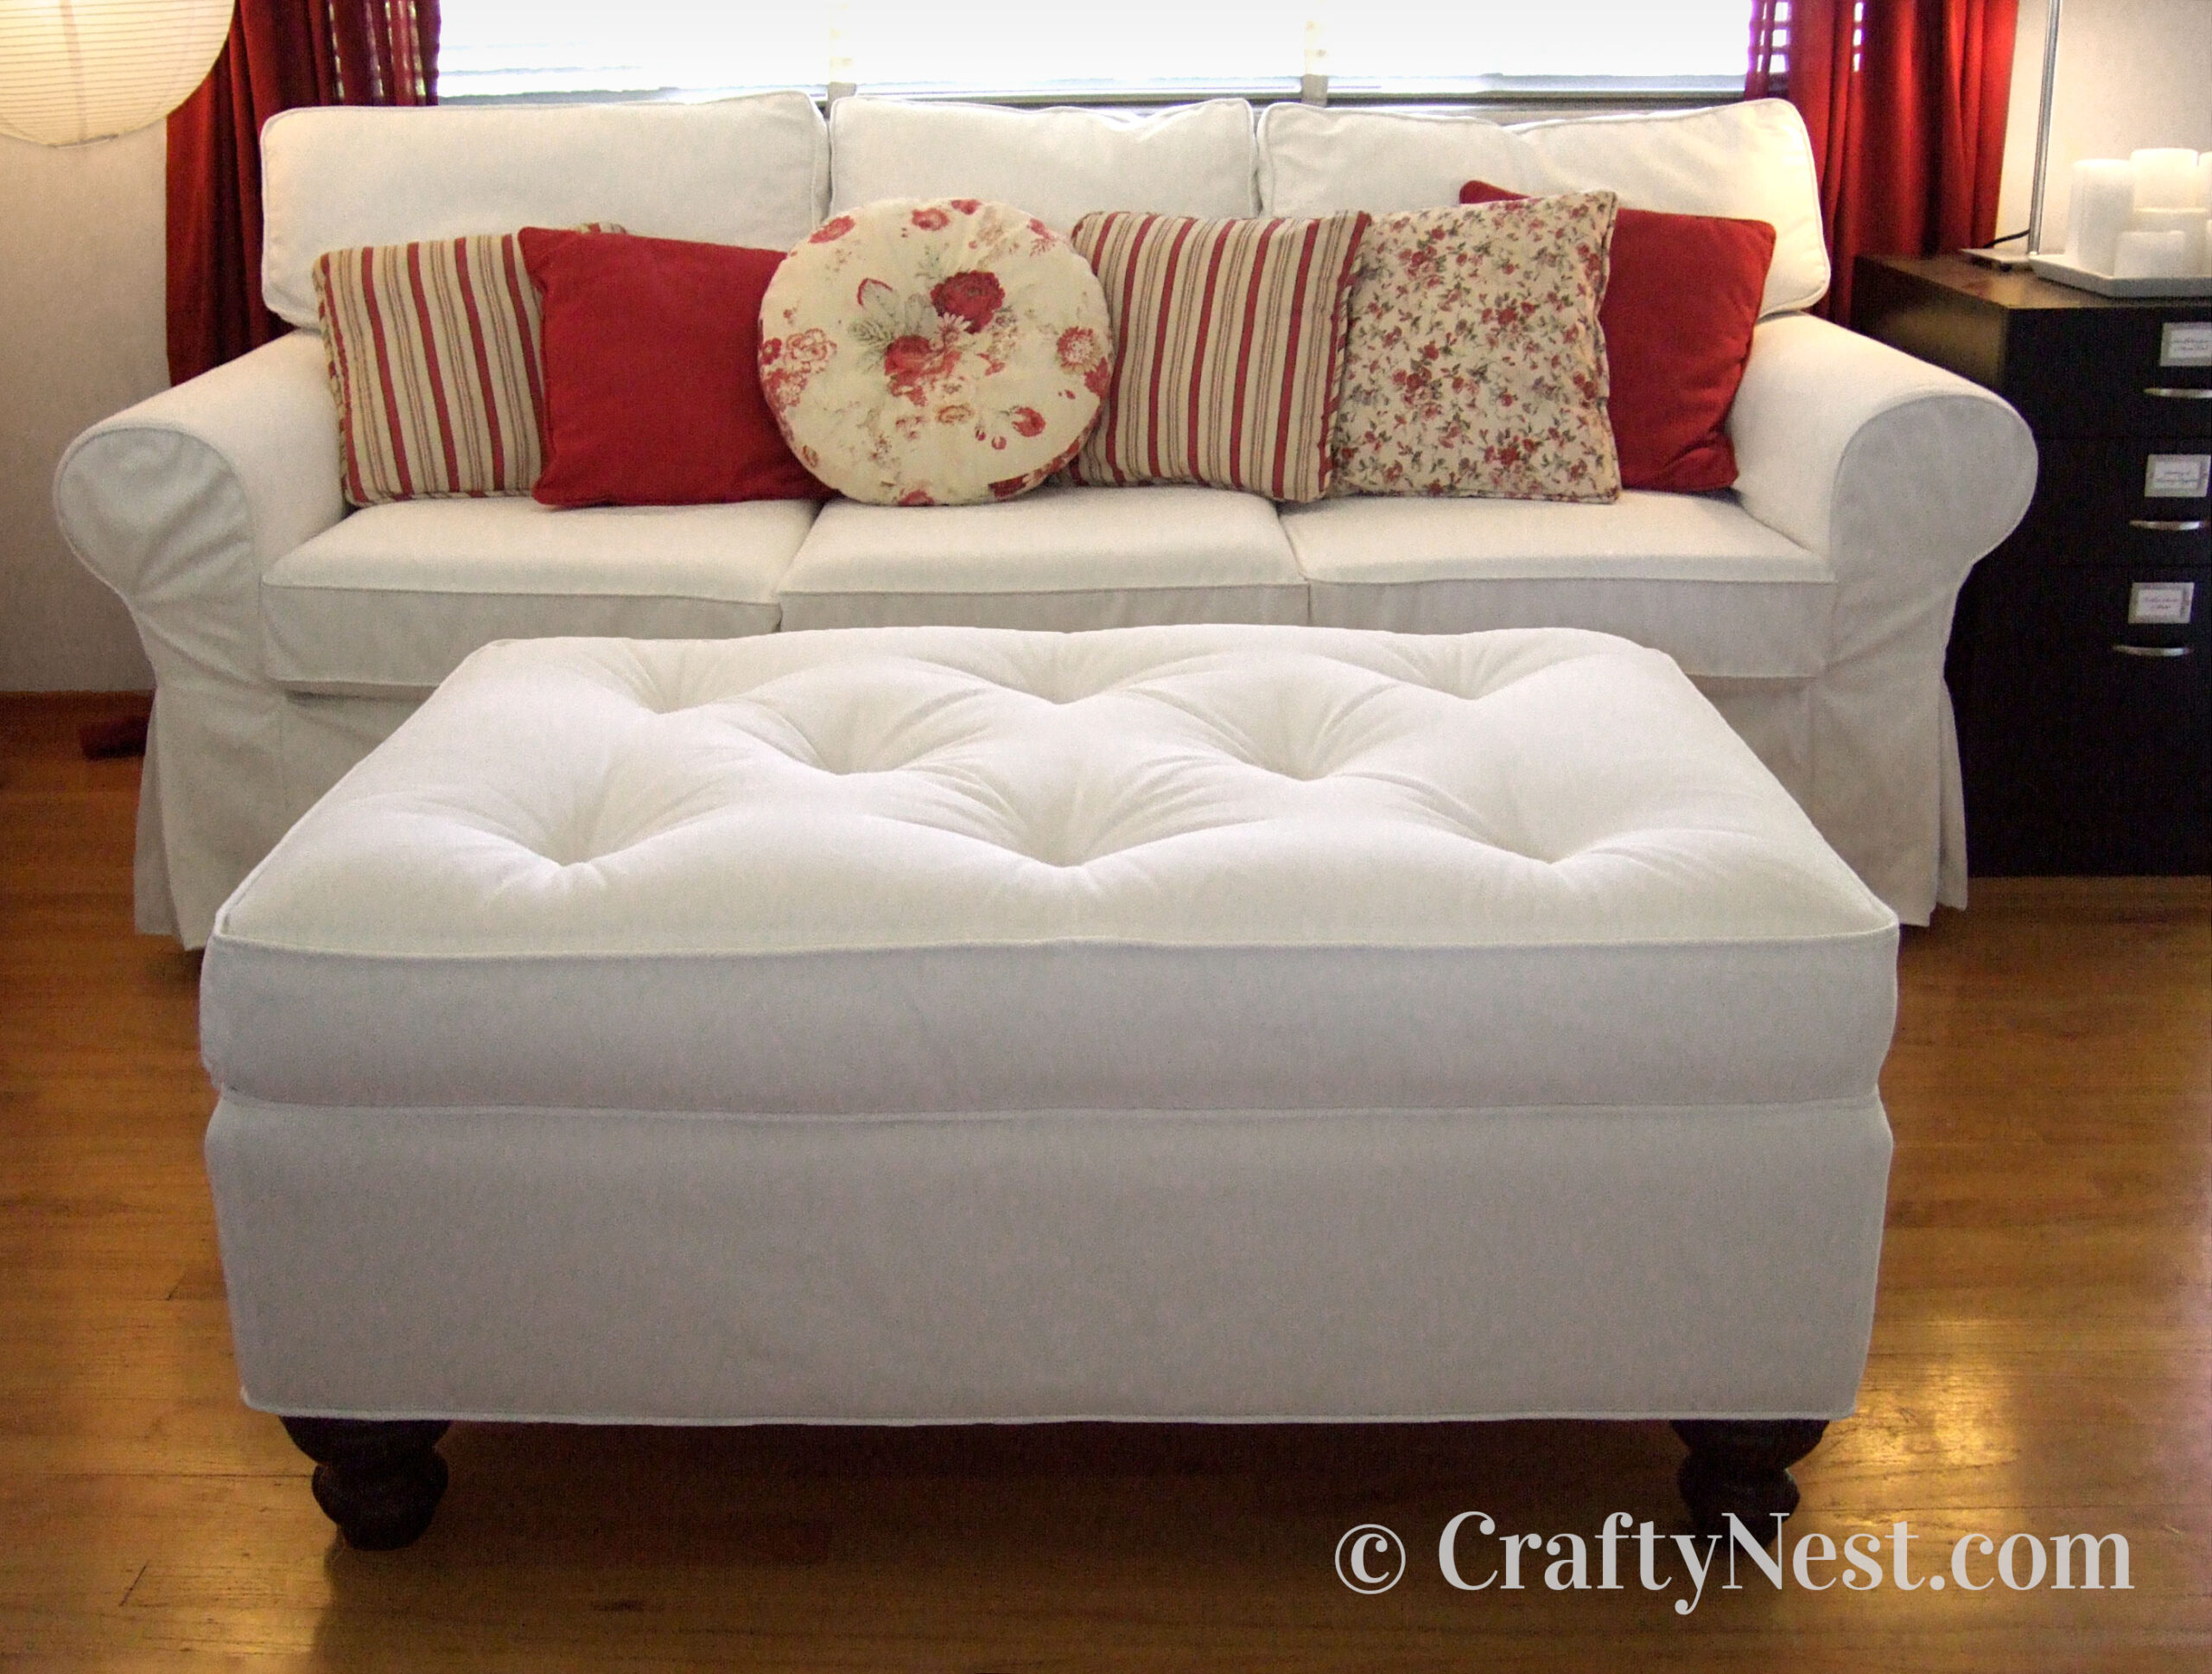 White tufted ottoman, photo